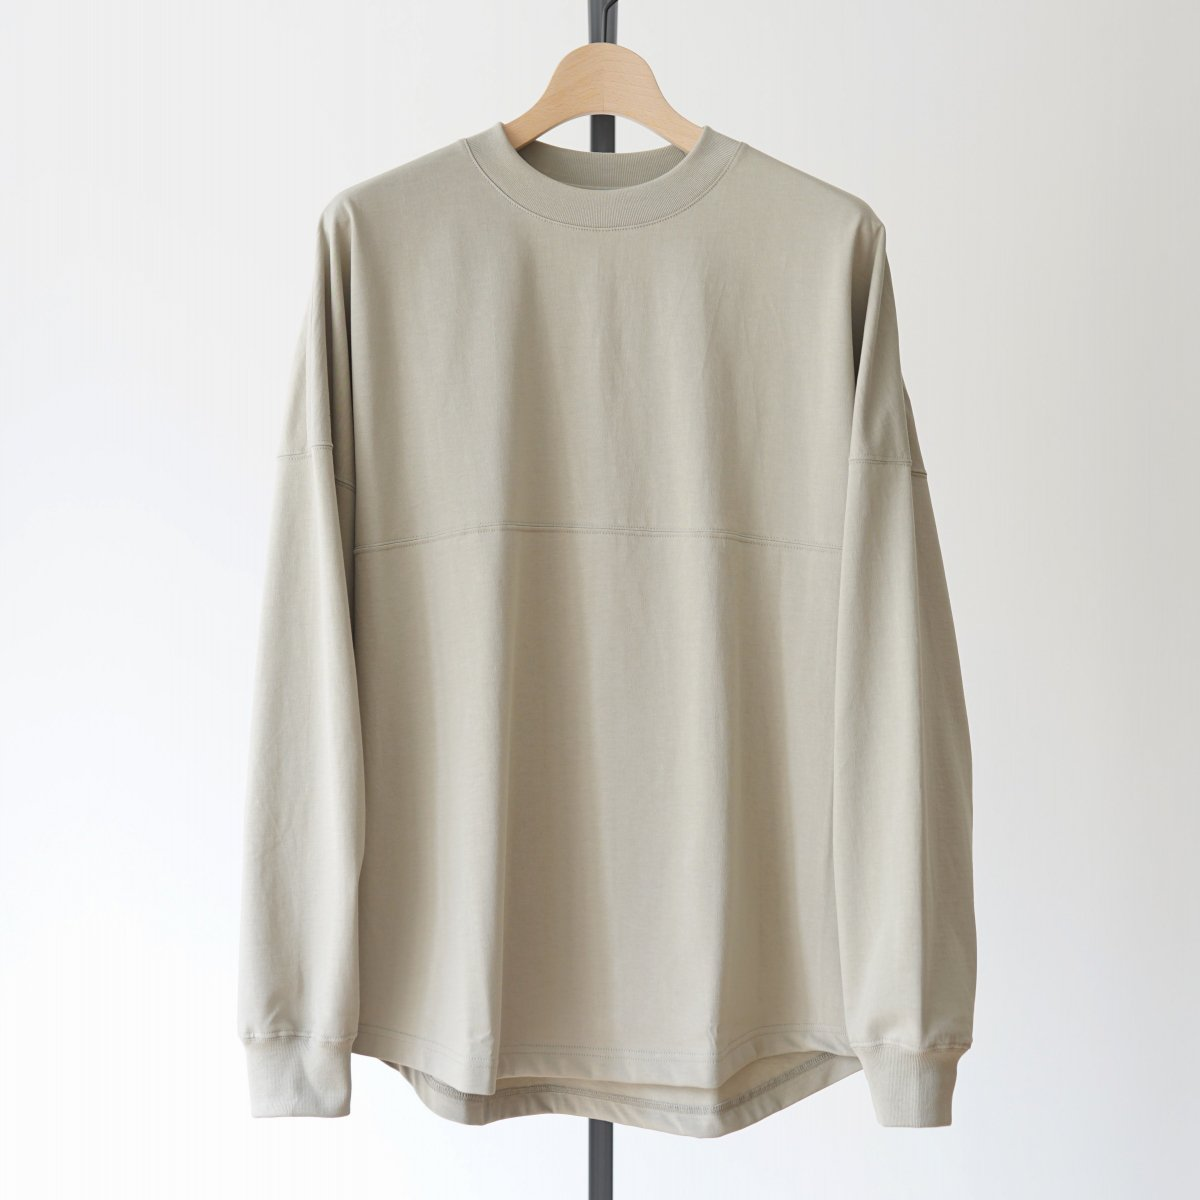 【unfil】ORGANIC COTTON LONG SLEEVE TEE - SMOKEY GREEN